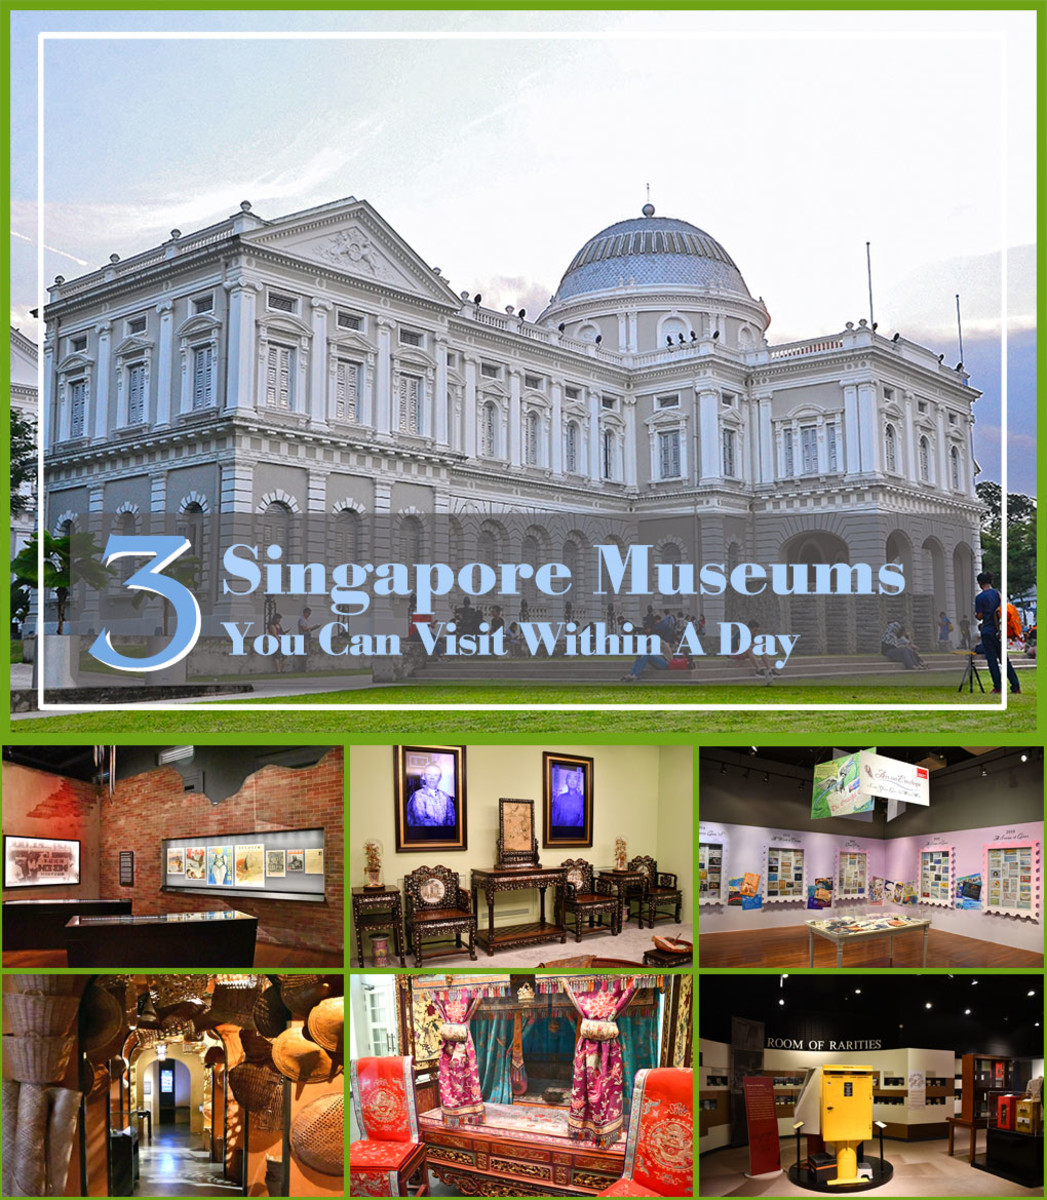 Don't miss these great Singapore museums when visiting the city state!